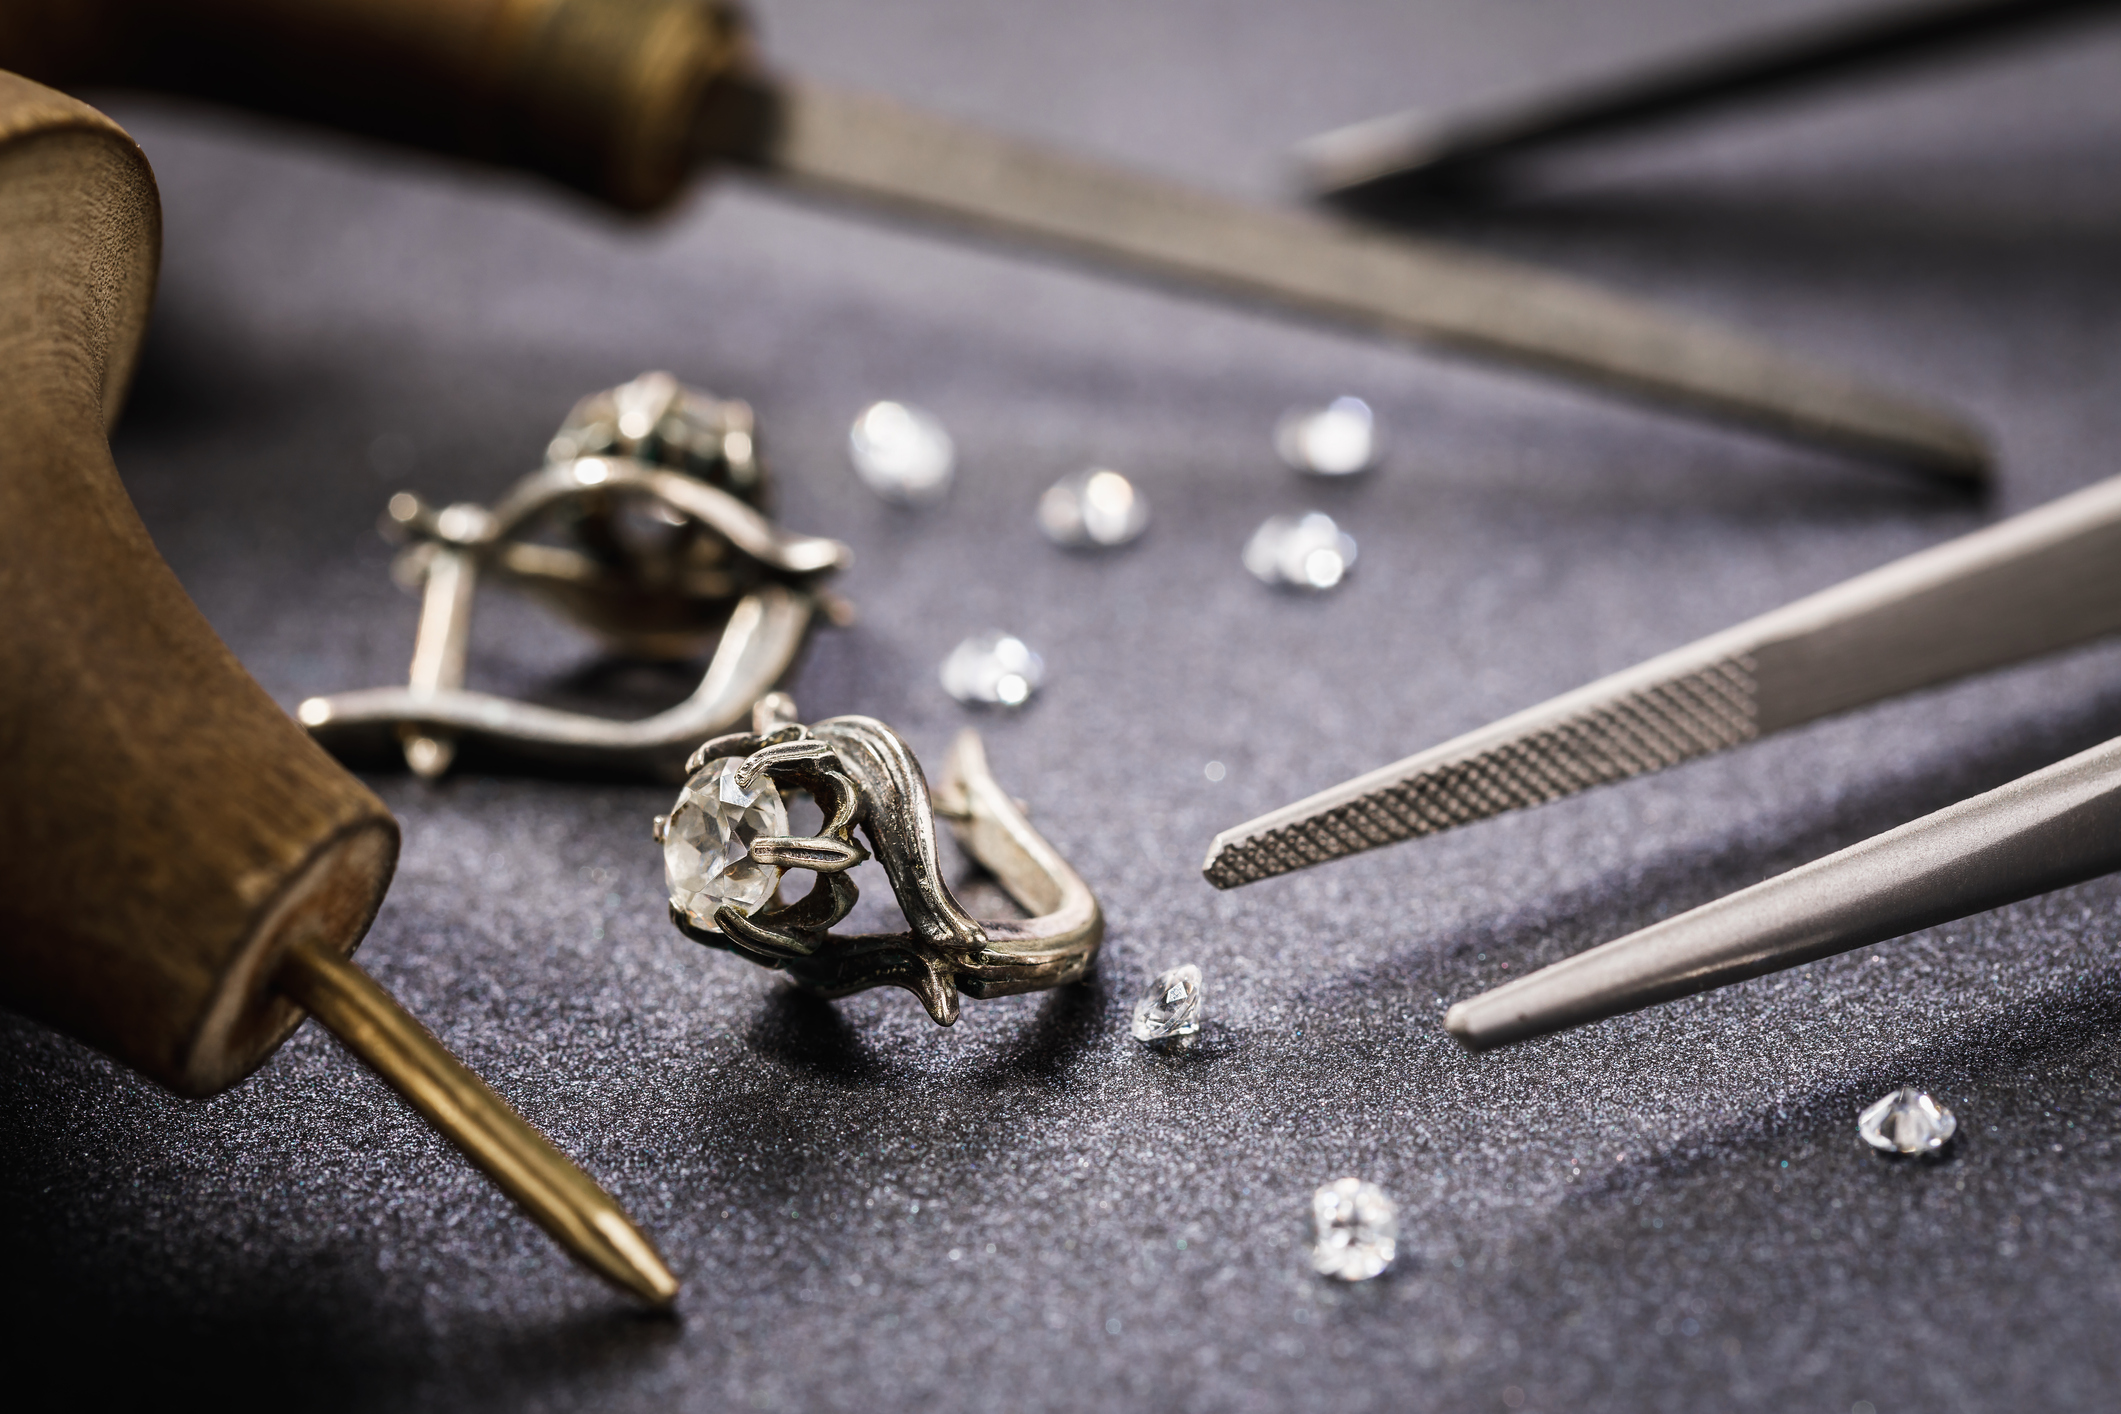 Earrings with a stone on the table, surrounded by jewelry repair tools